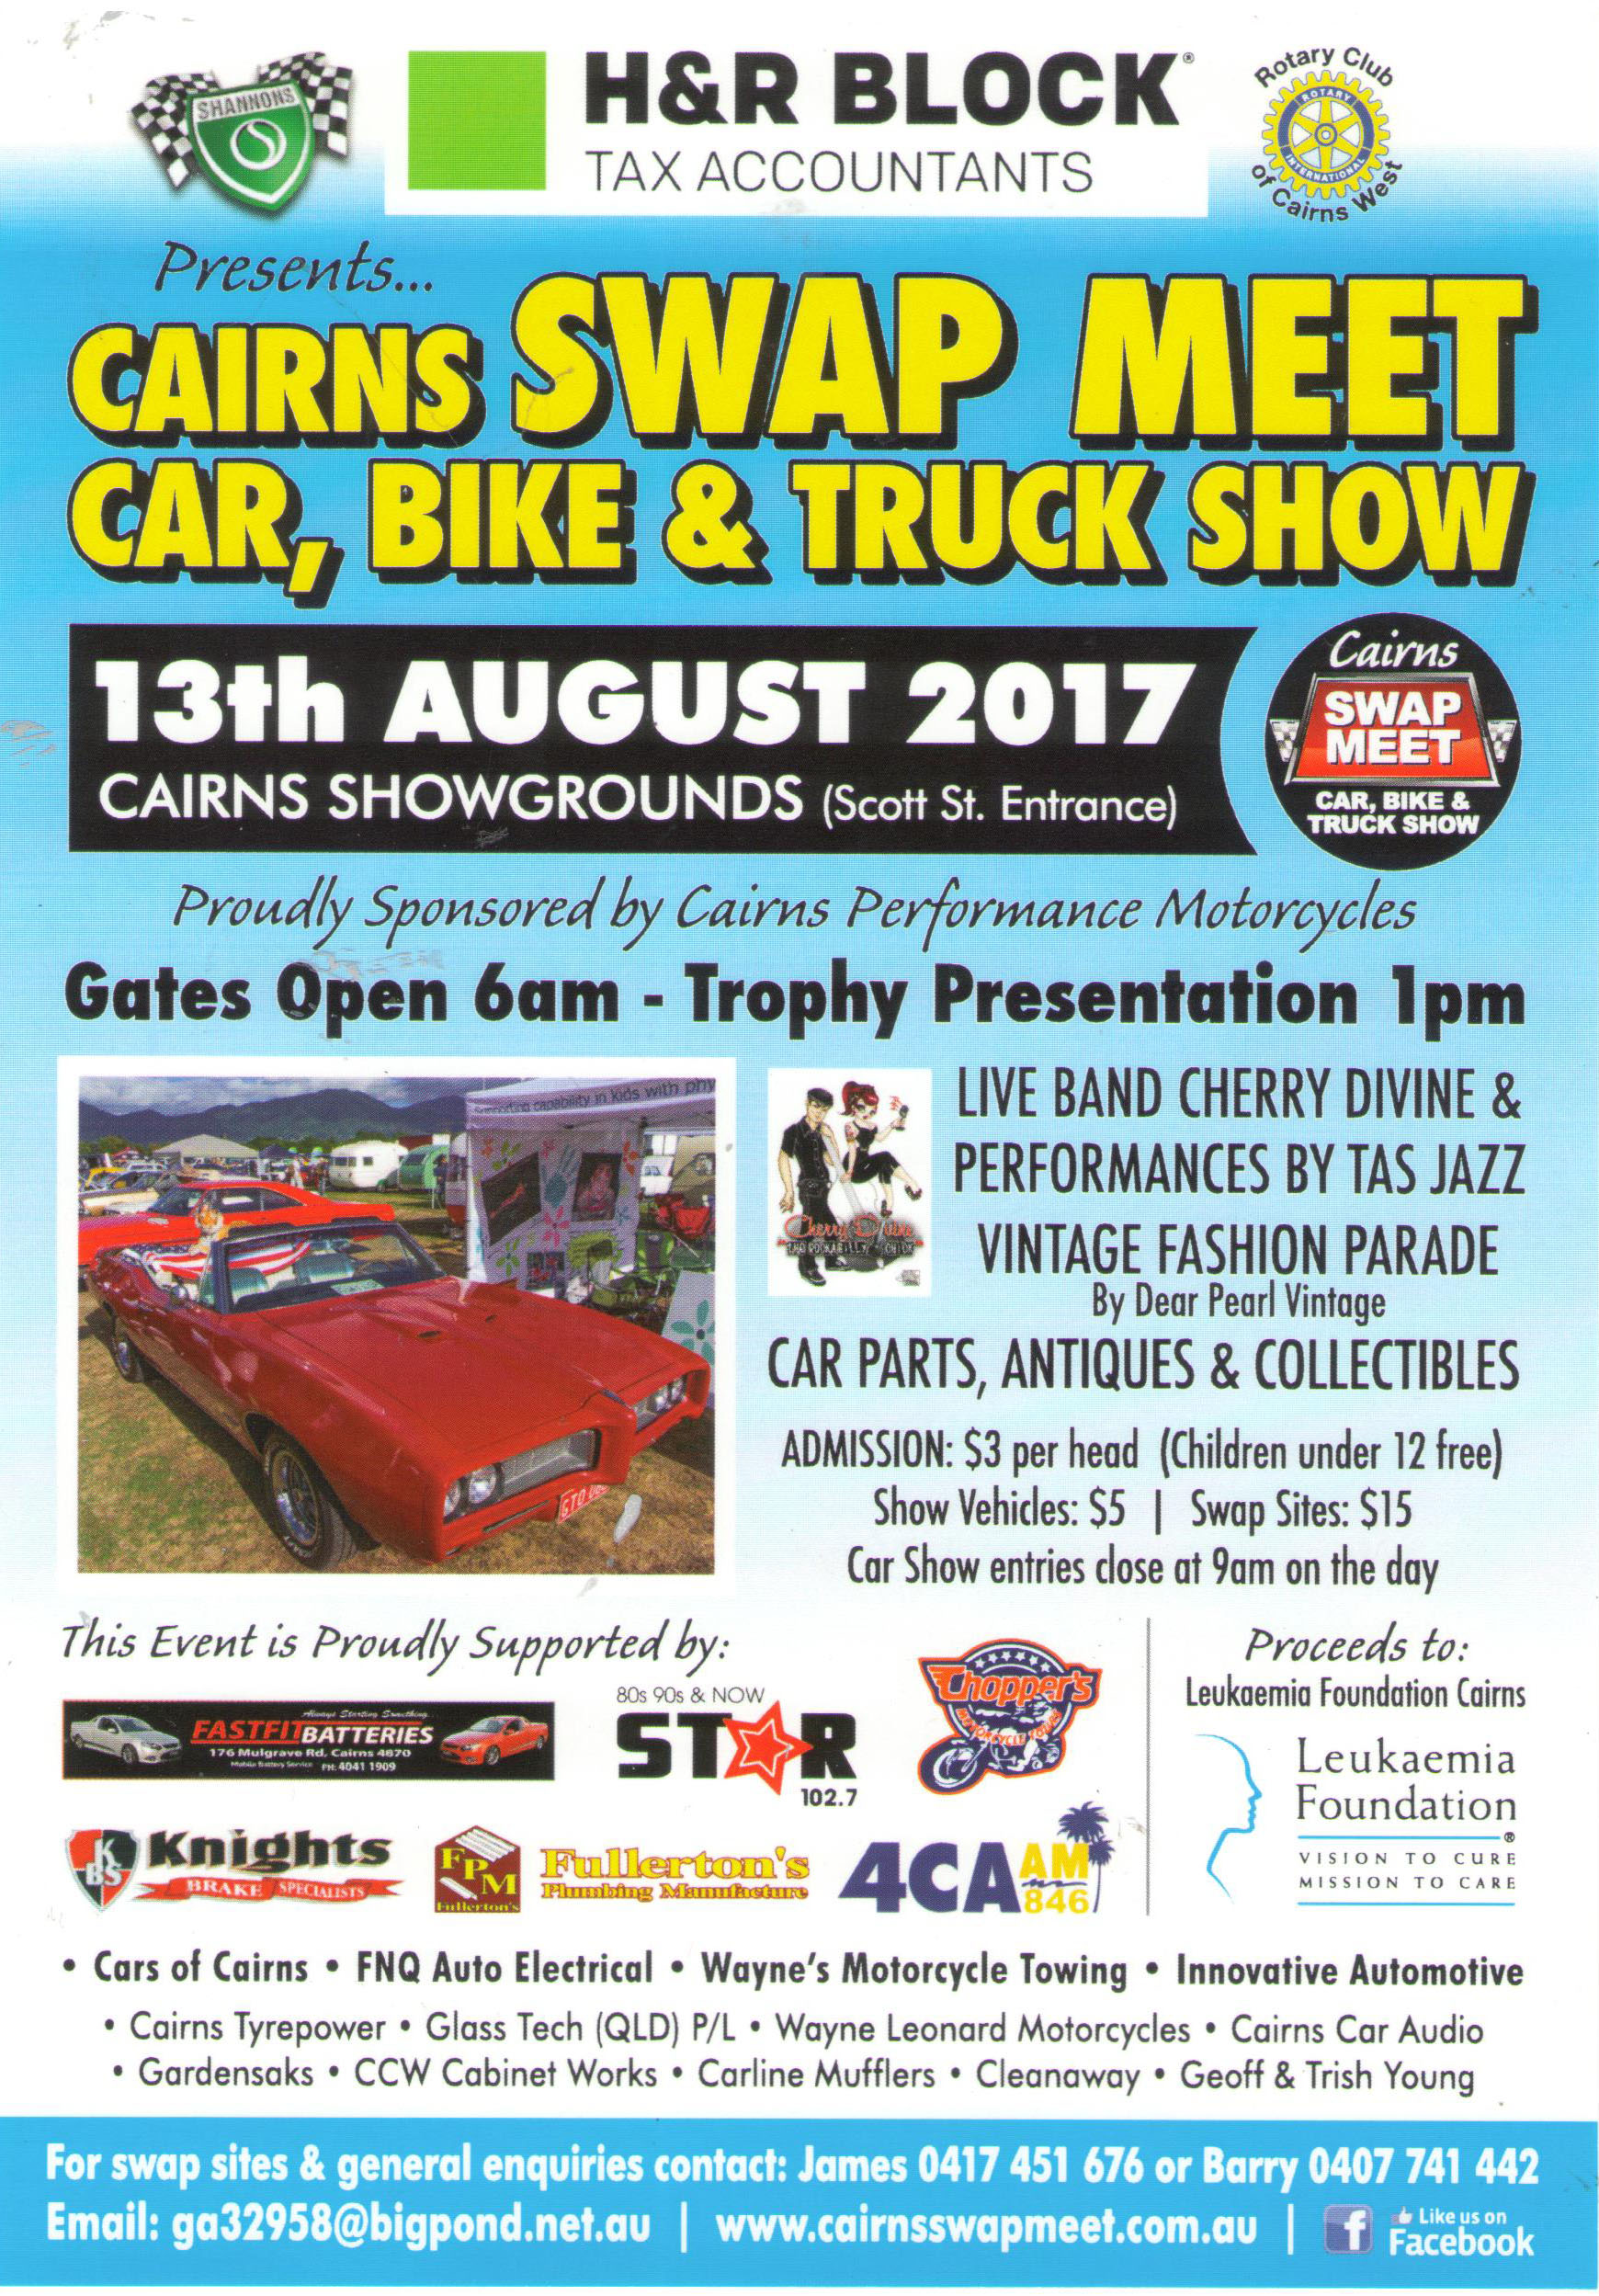 Cairns Swap Meet Car Bike & Truck Show flyer